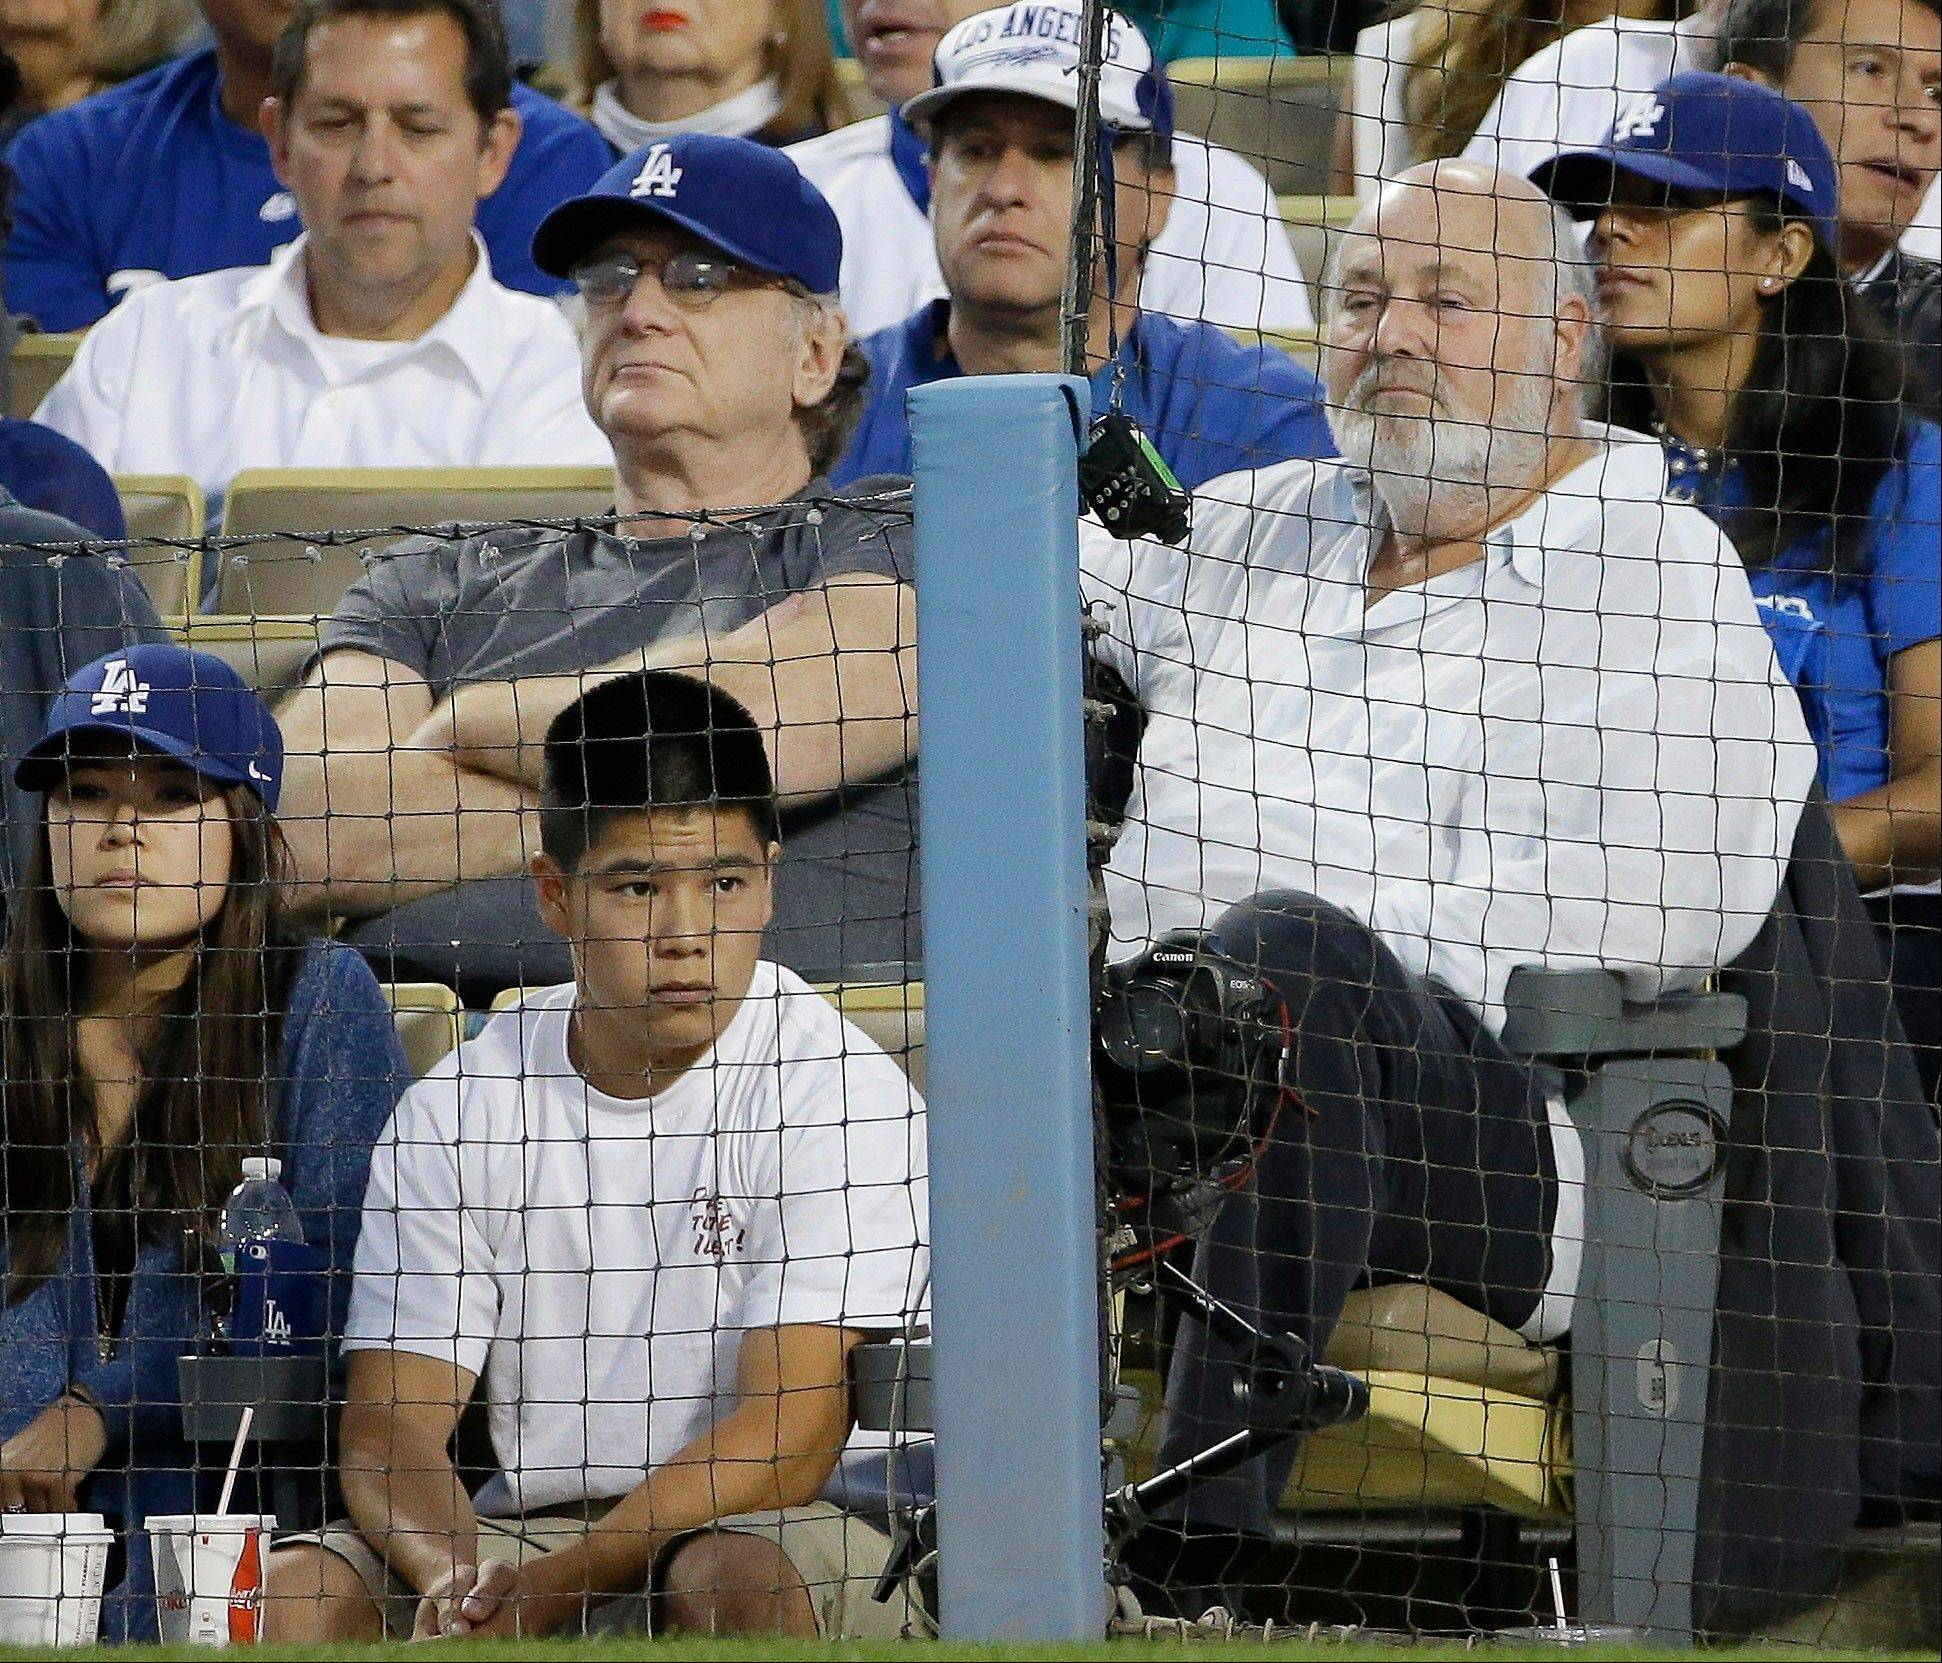 Actor Rob Reiner, right, watches play during the fourth inning of Game 4.